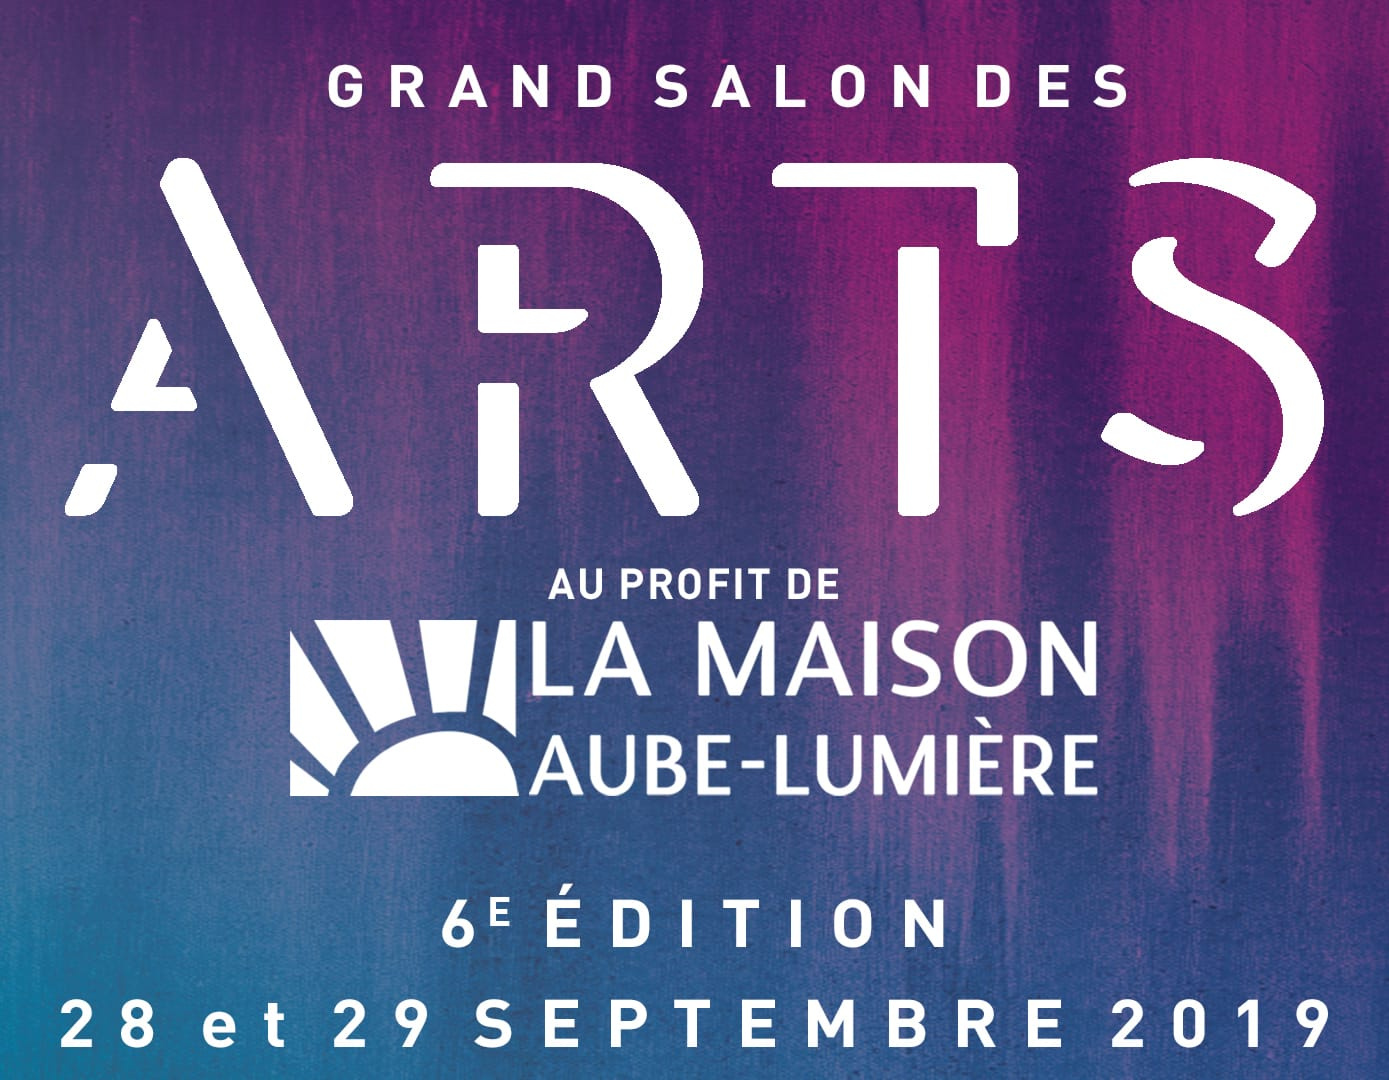 Grand Salon des Arts